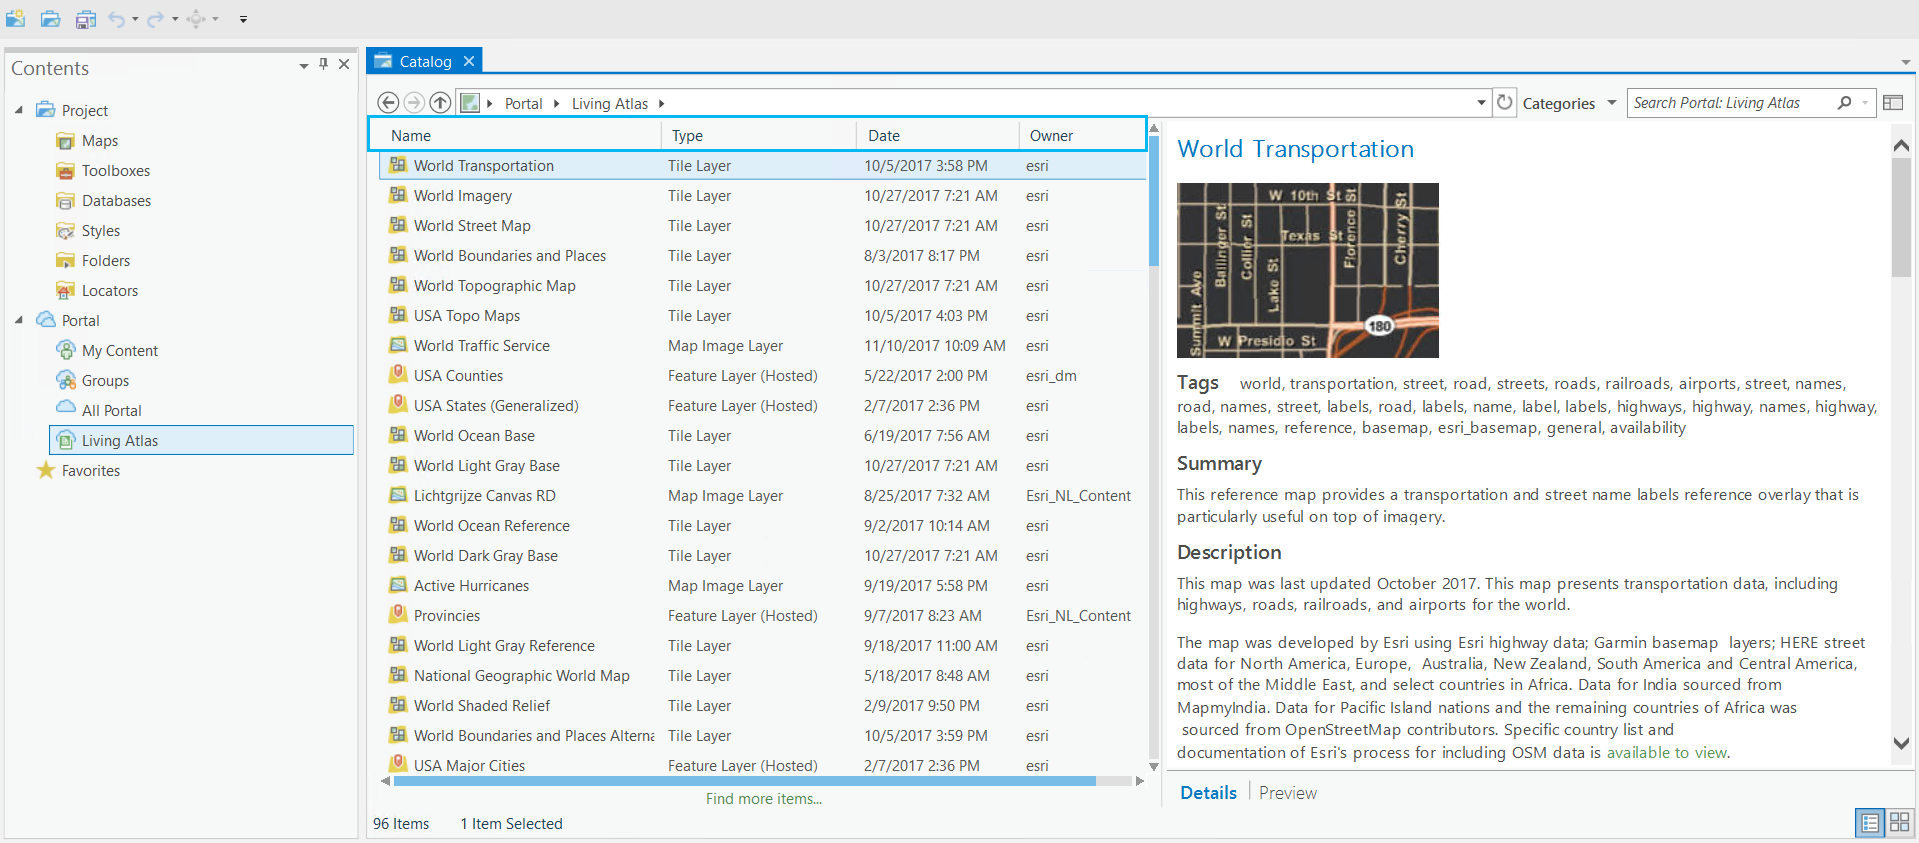 Catalog view with date and owner